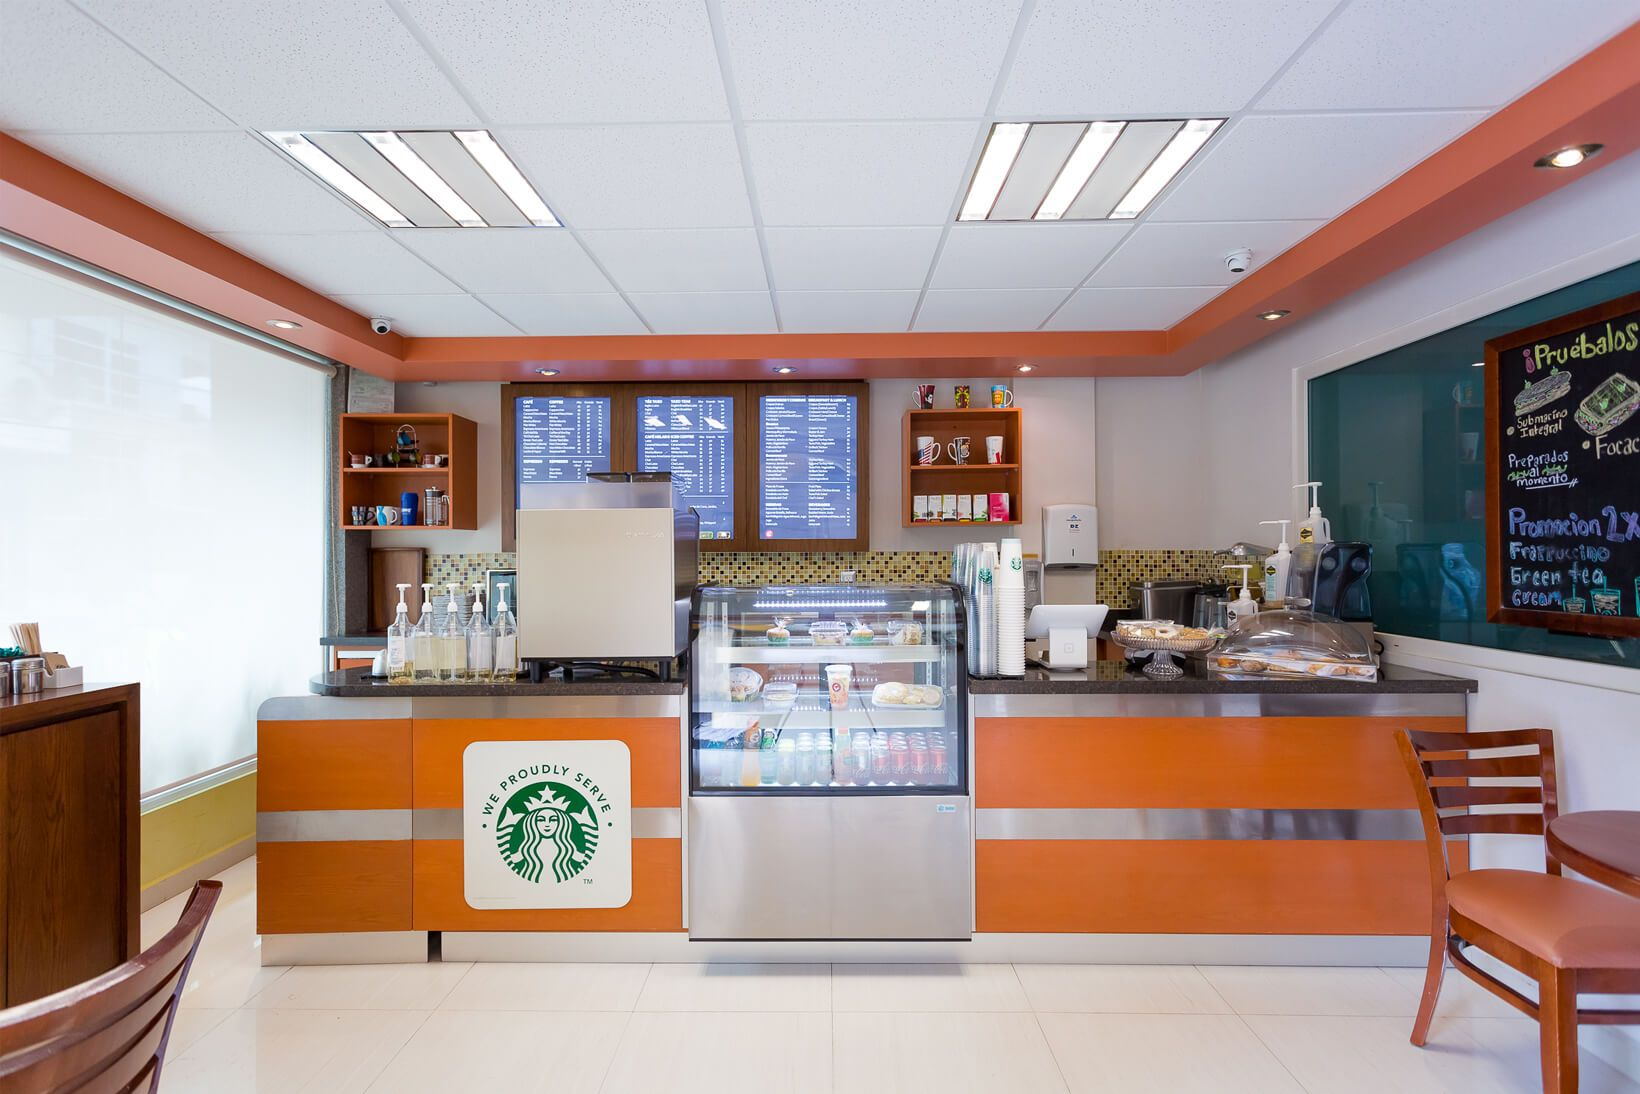 The first CMQ Cafeteria with Starbucks license at Hospital CMQ City Center in Downtown Puerto Vallarta